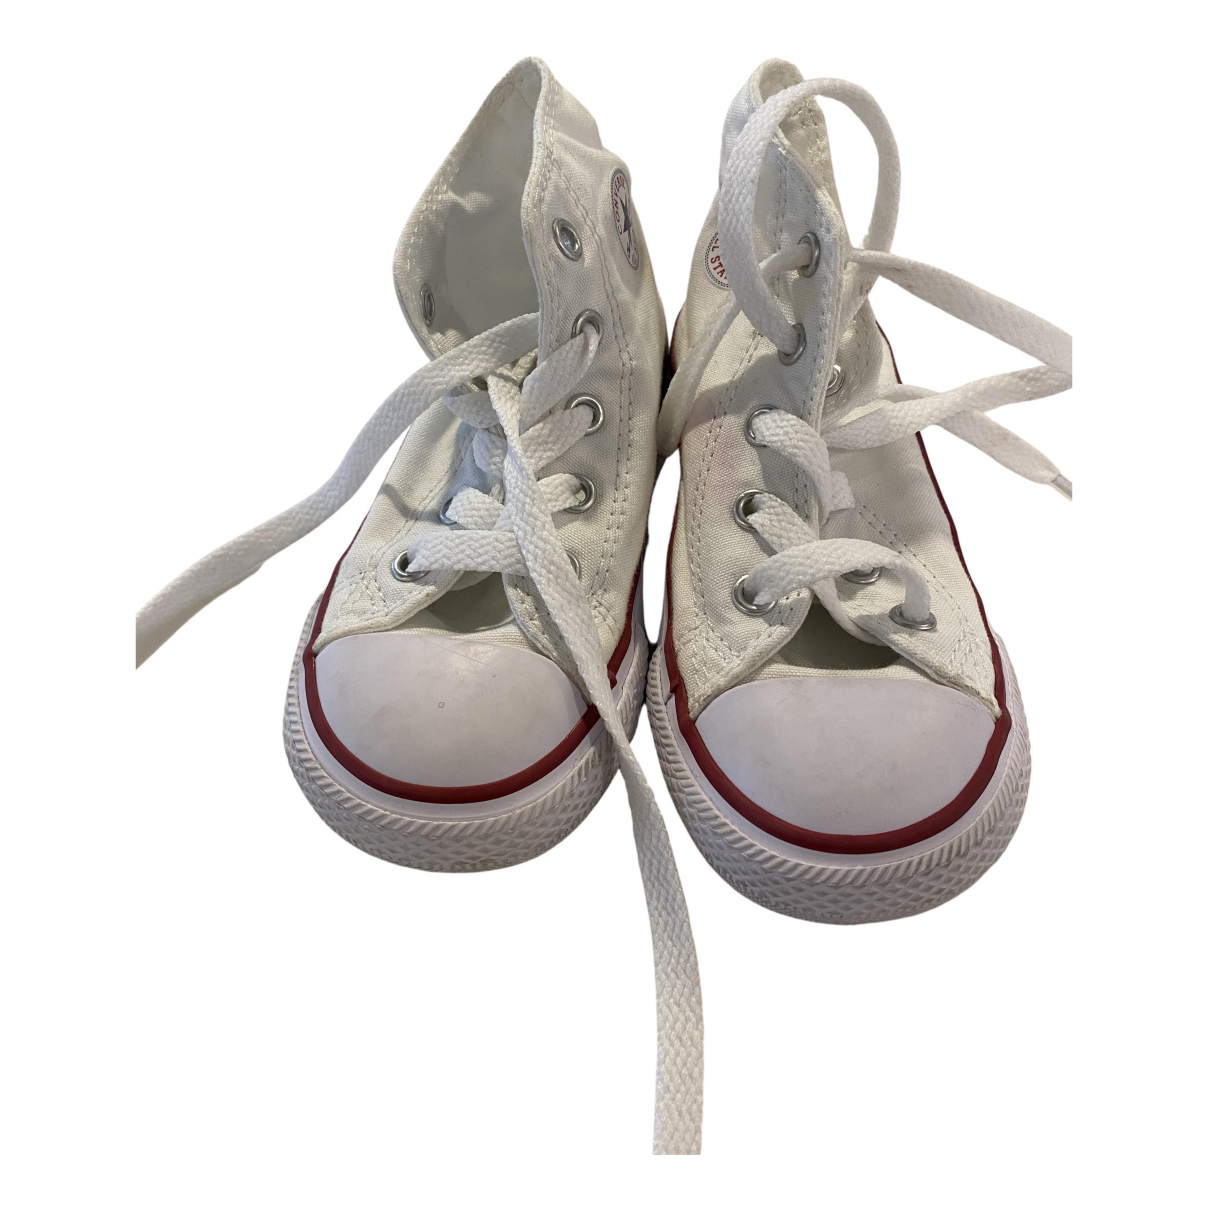 Converse N White Cloth Trainers for Kids 8 US